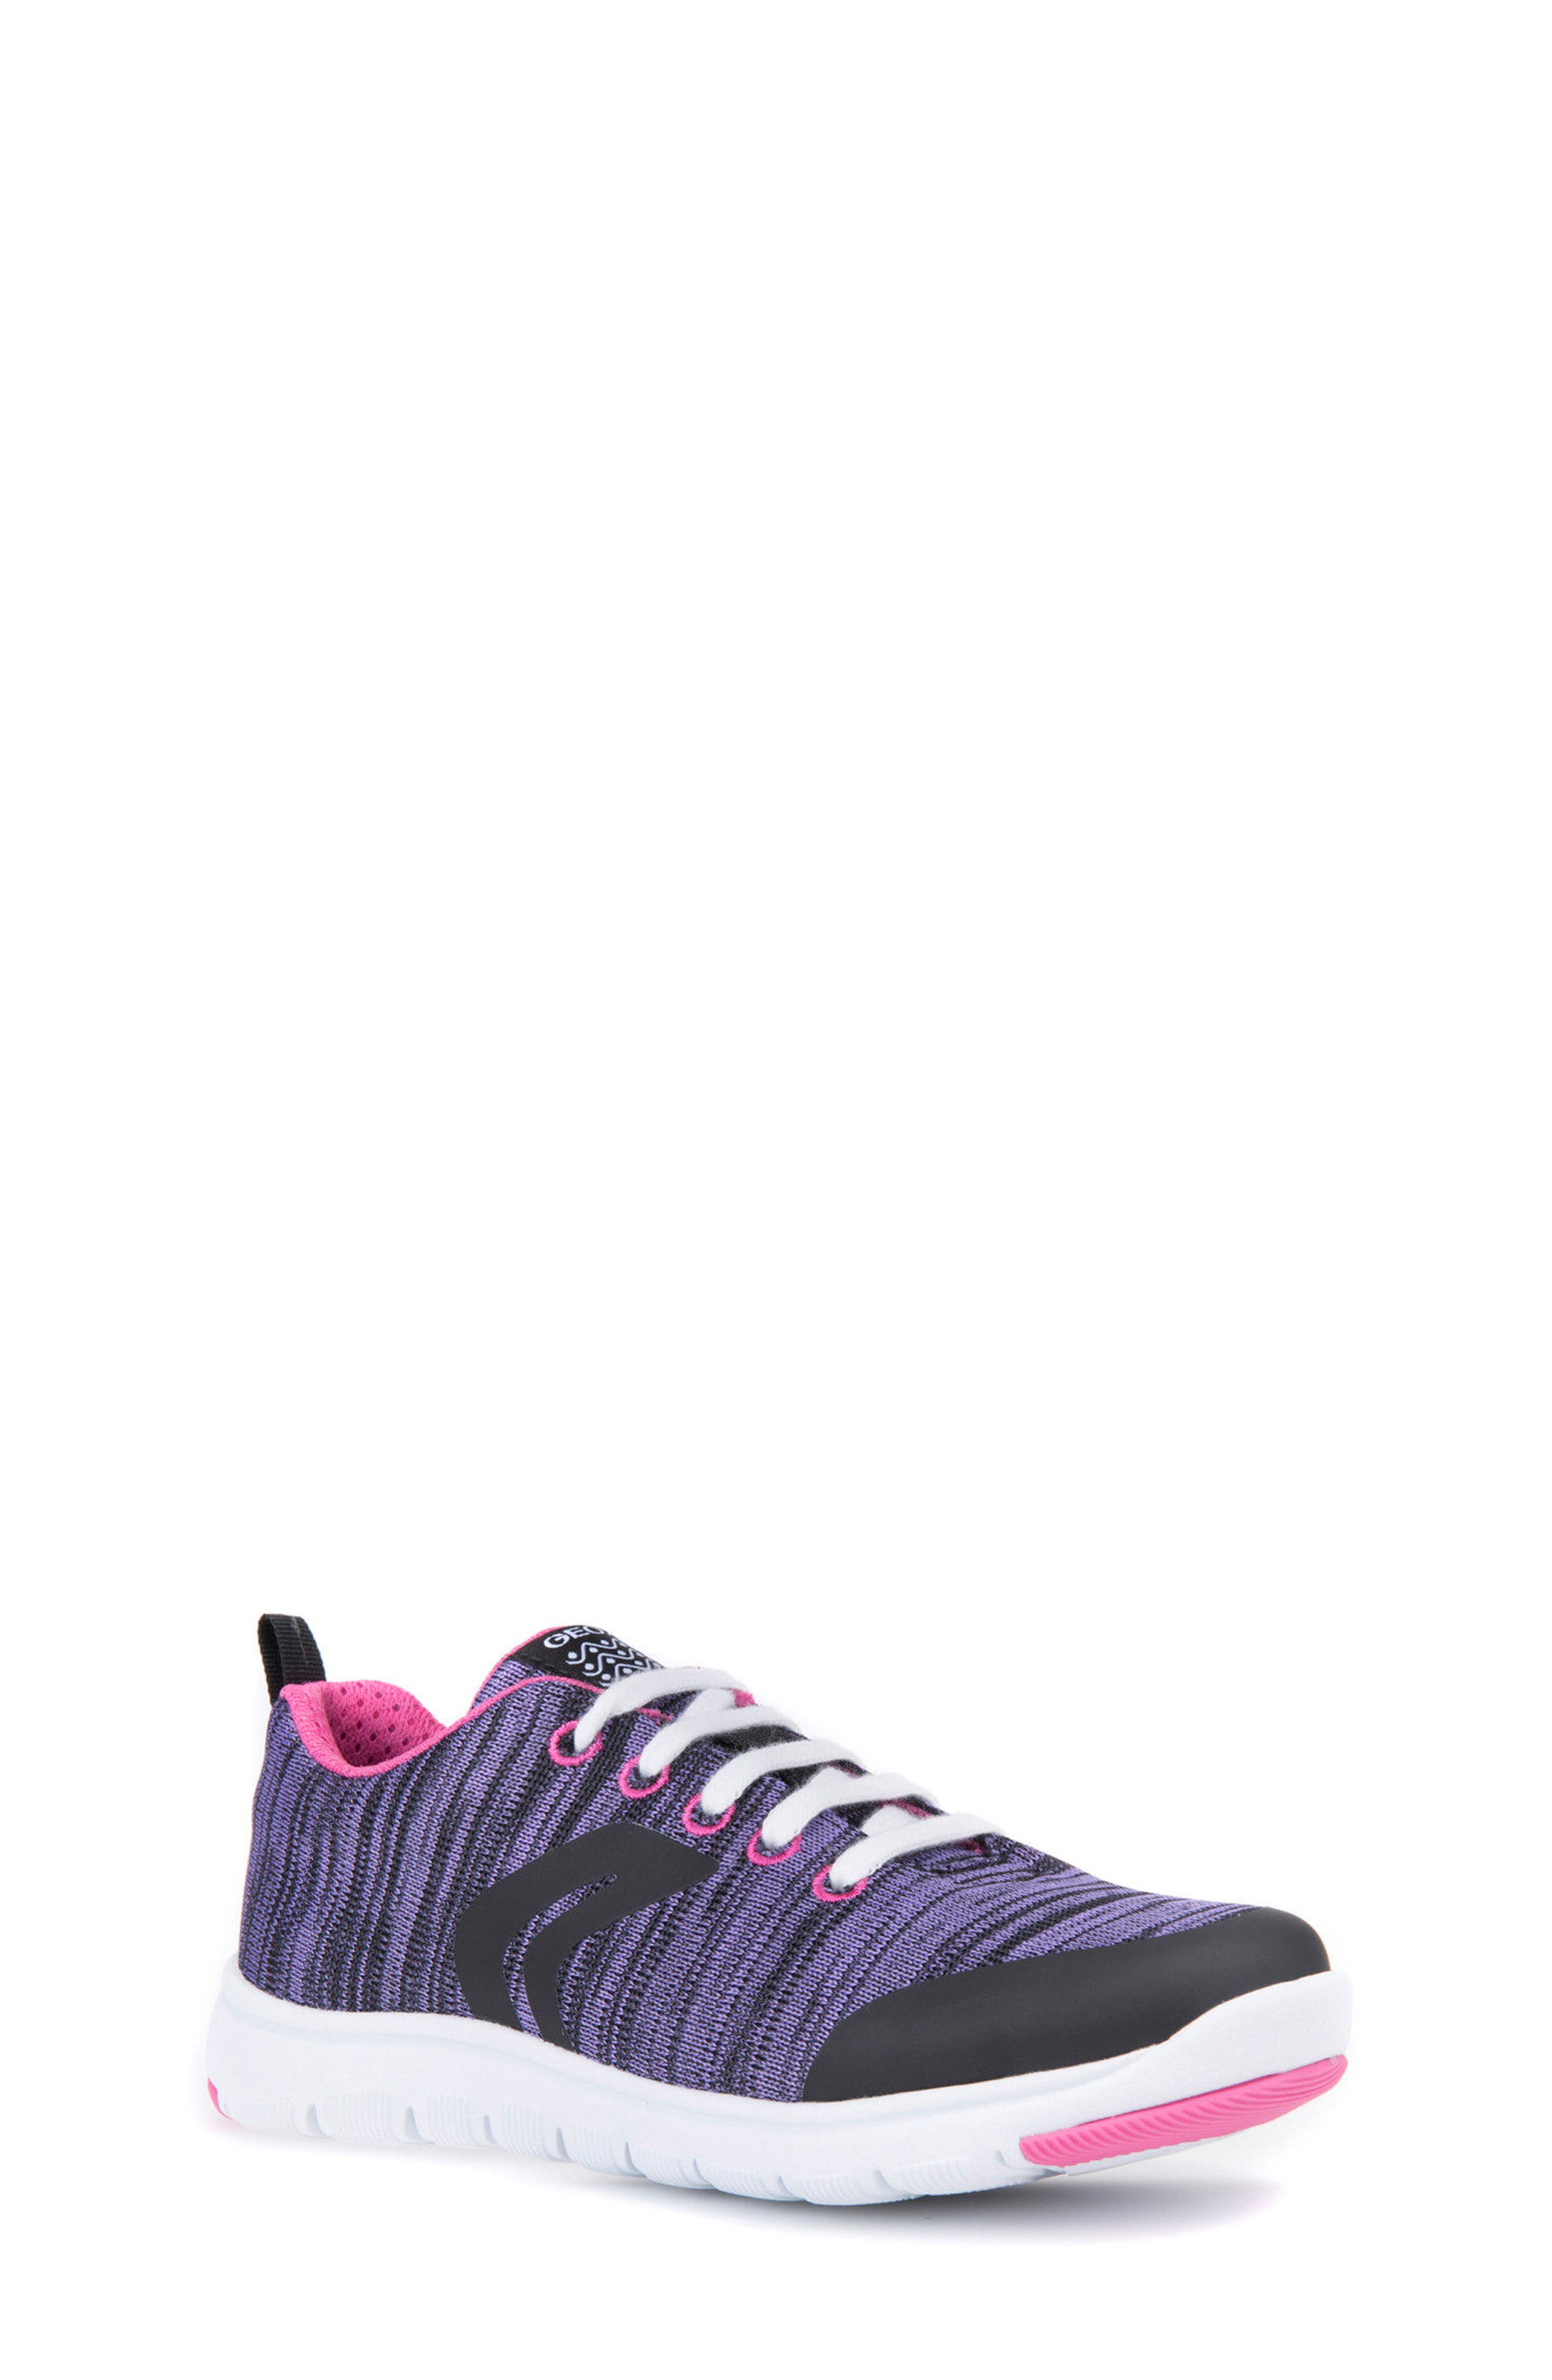 GEOX Xunday Performance Knit Low Top Sneaker, Main, color, 574